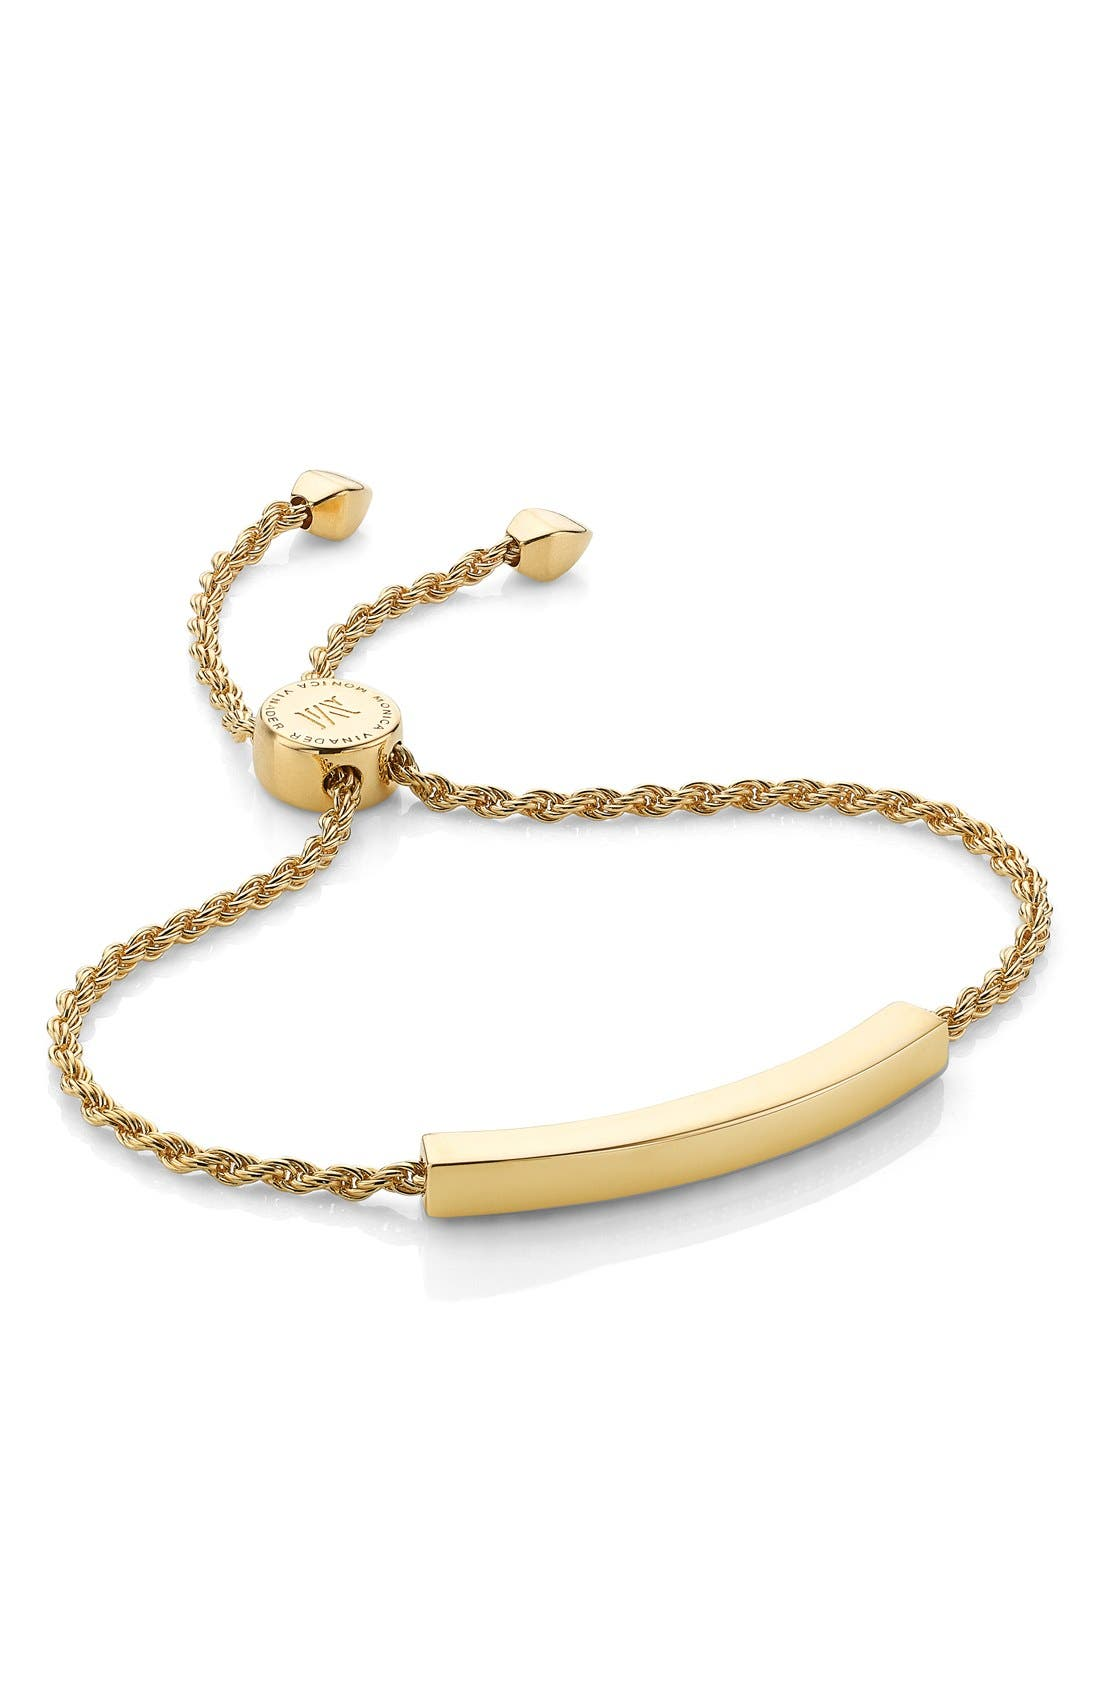 Personalized gifts linear engravable chain bracelet